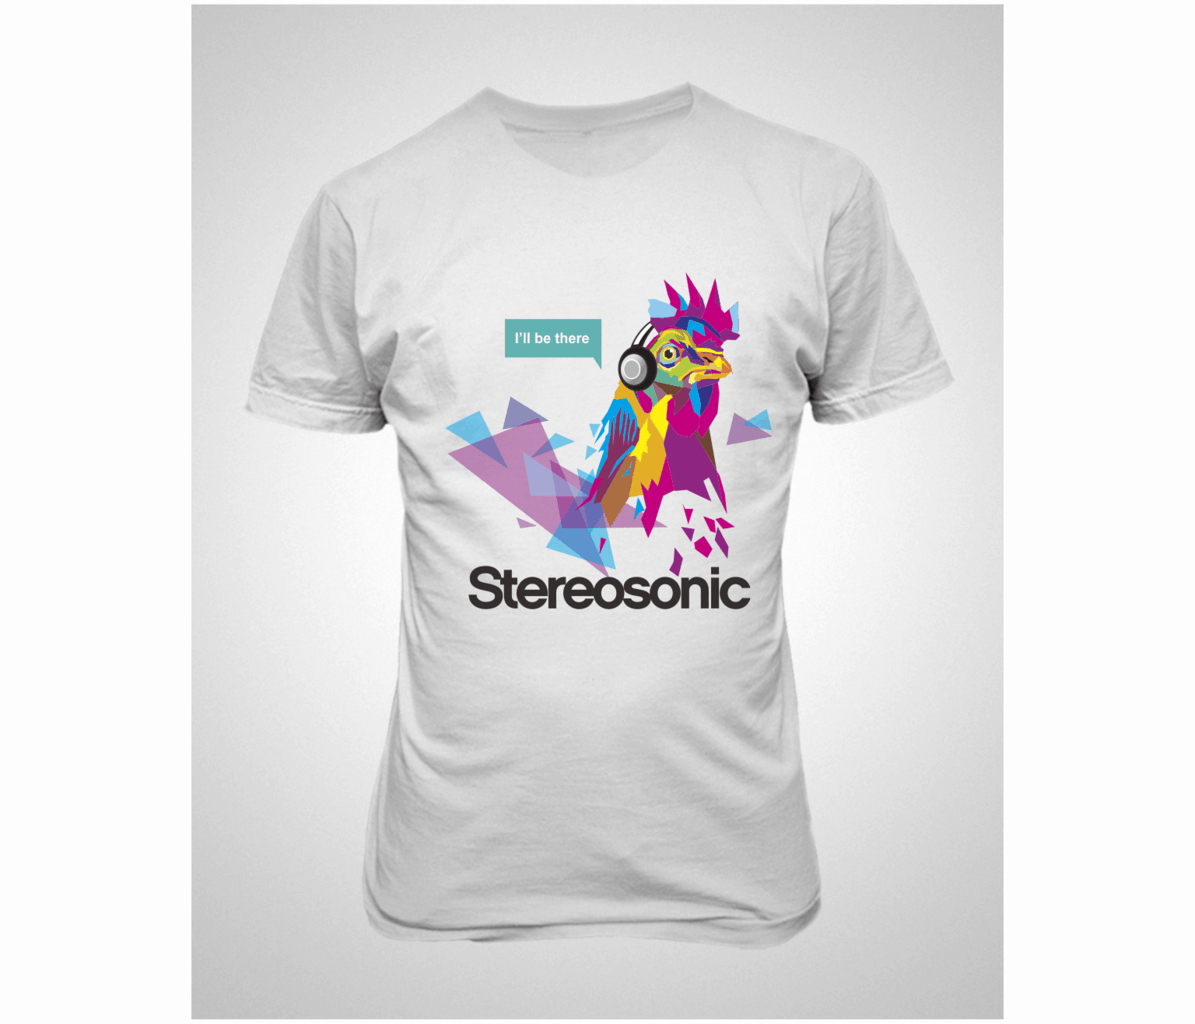 99designs has partnered with stereosonic to create a shirt for T shirt design festival